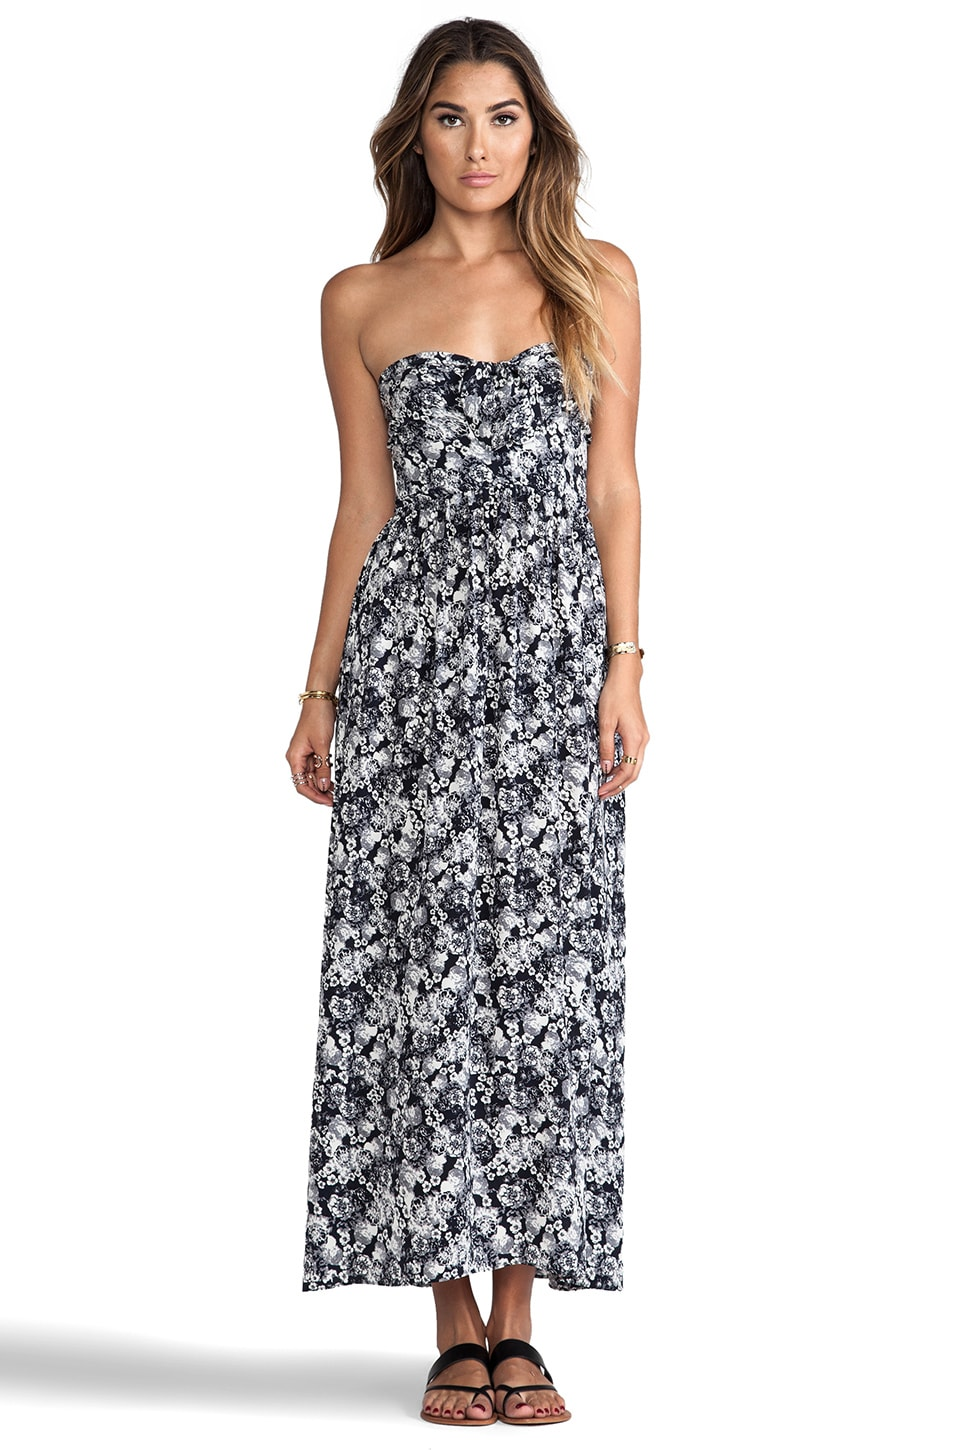 zinke Zoe Dress in Black & White Floral